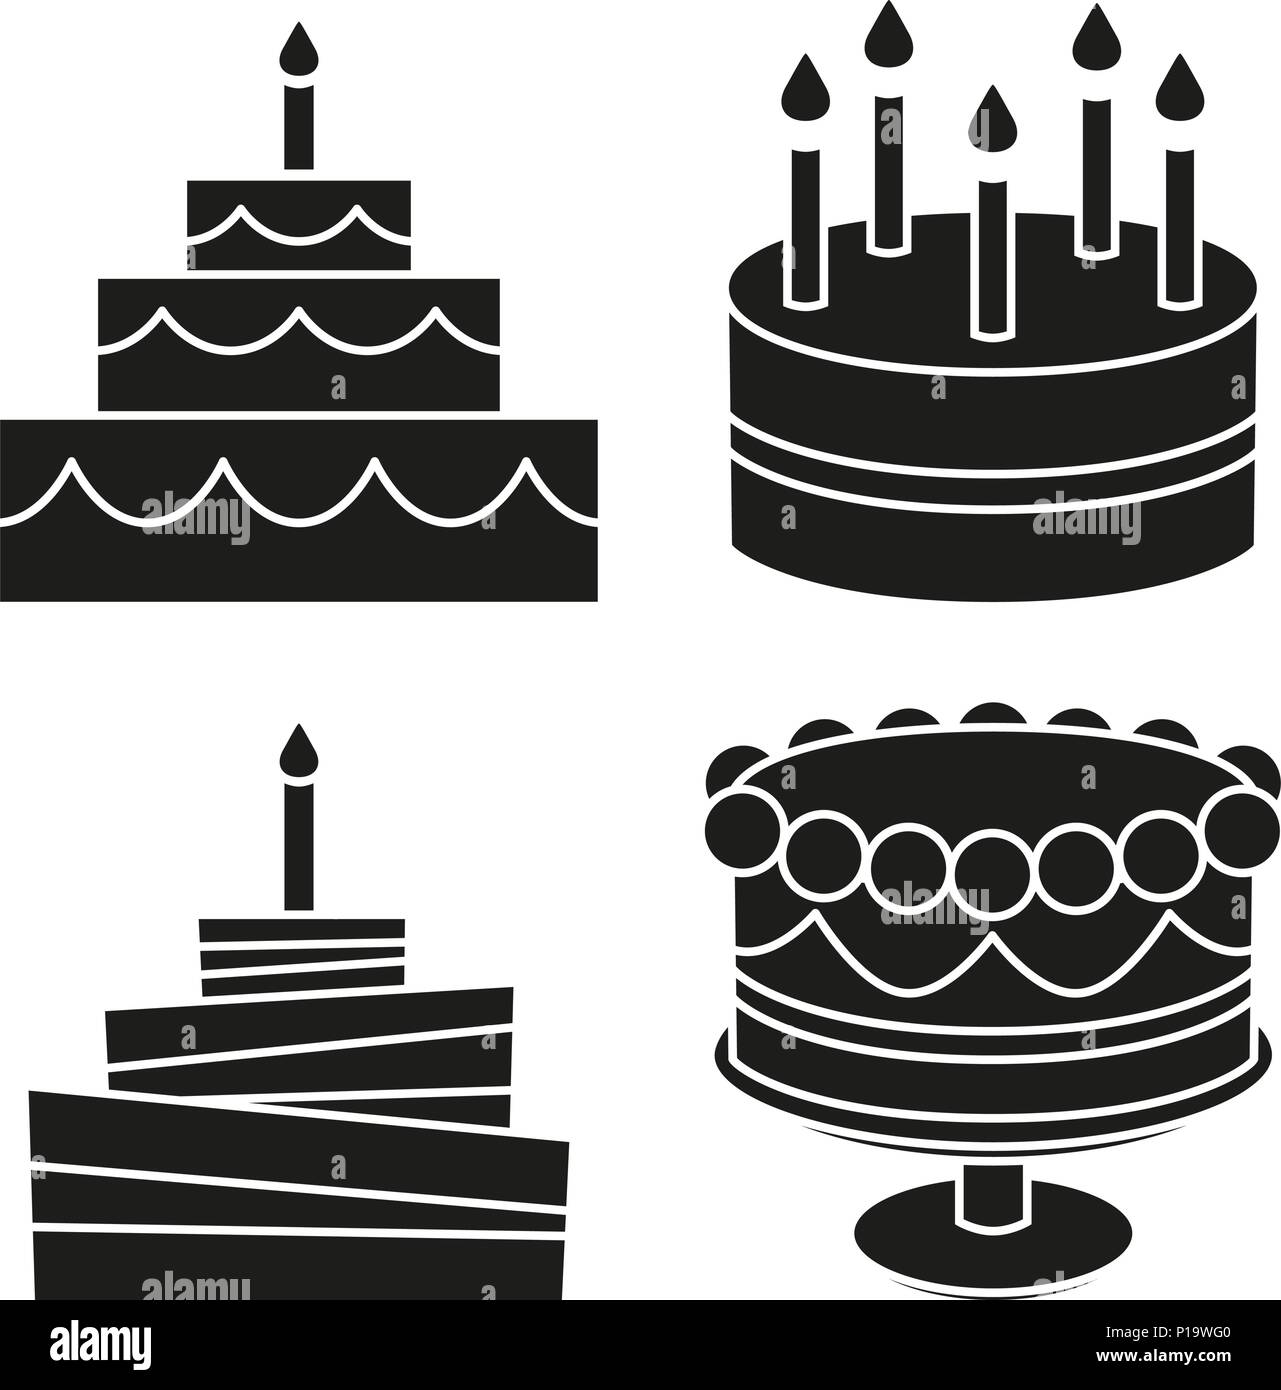 Groovy Black And White Birthday Cake Silhouette Set Stock Vector Art Funny Birthday Cards Online Alyptdamsfinfo